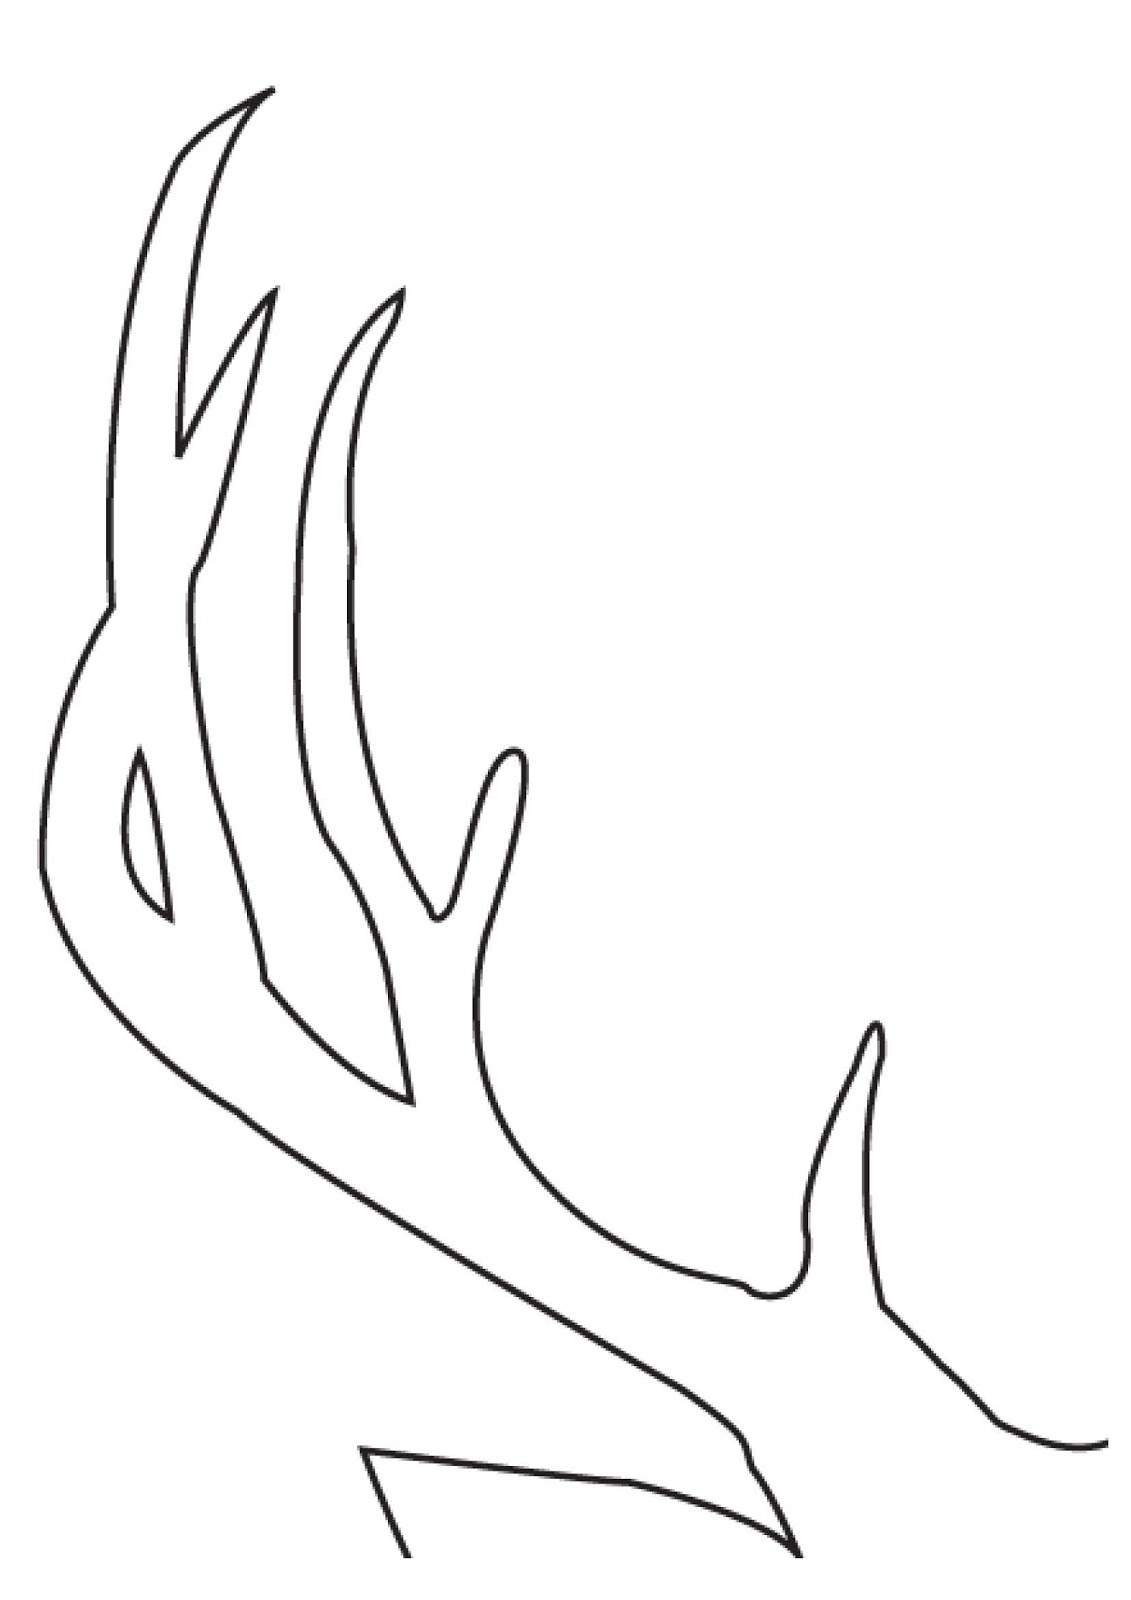 Excellent Drawing Of A Moose 65 furthermore tangledantler moreover Oh Deer together with Wendigo Hannibal 533565266 also Royalty Free Stock Image Deer Head Image16437976. on deer antlers drawing